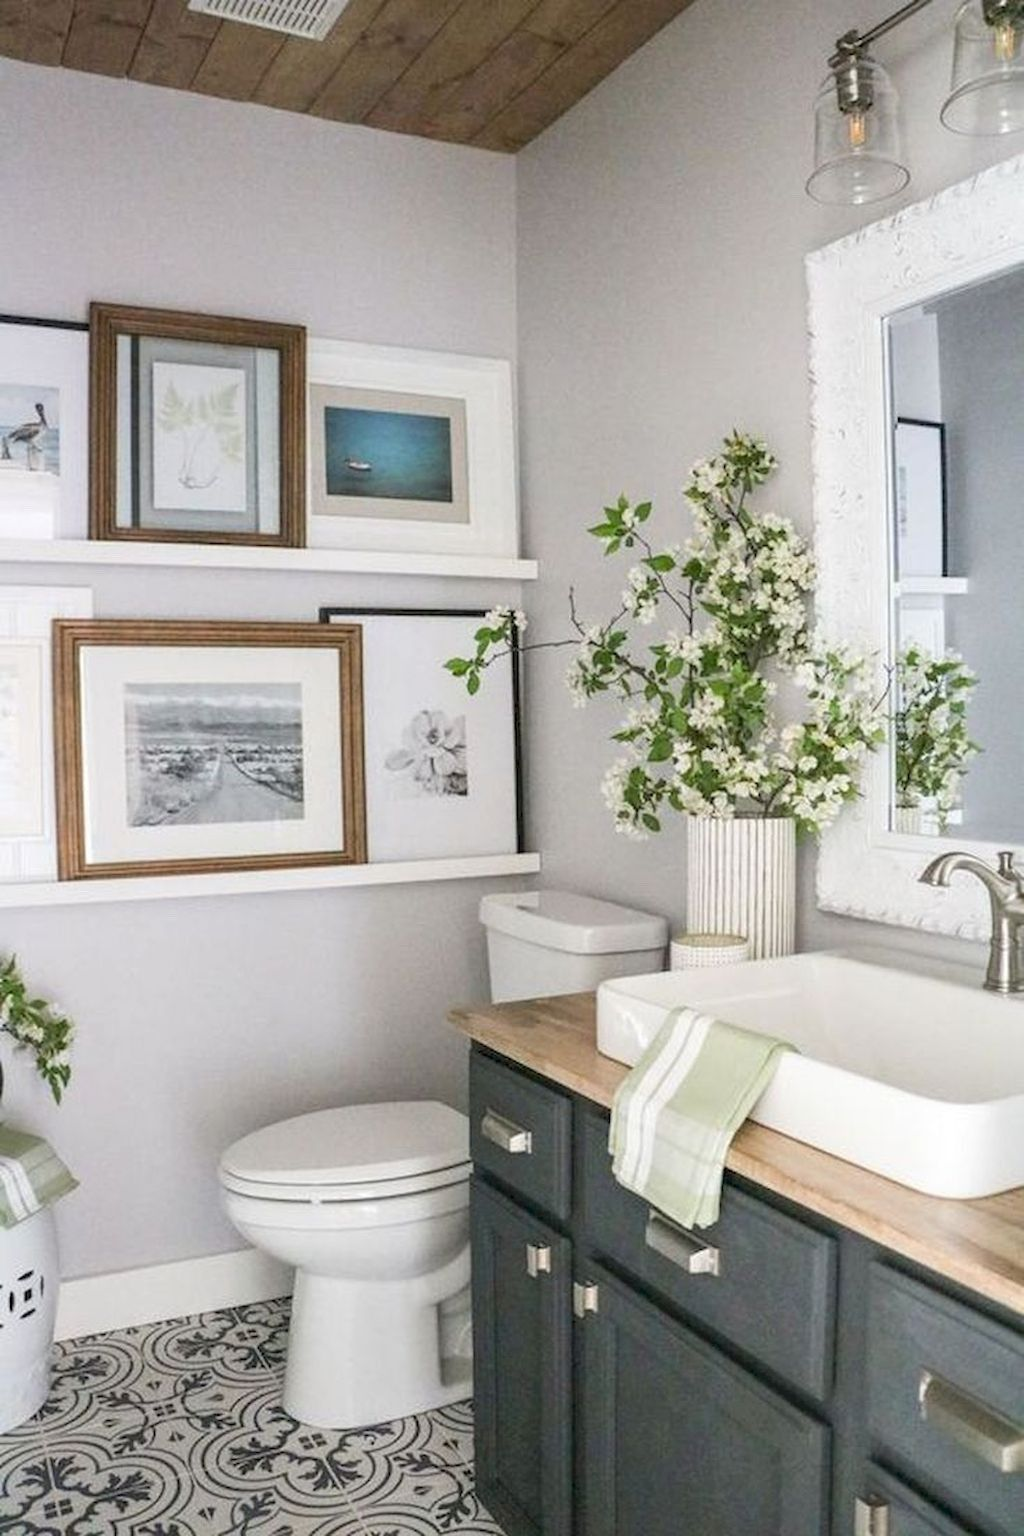 Bathroom Remodel Bathroom Renovations DIY Bathroom Ideas